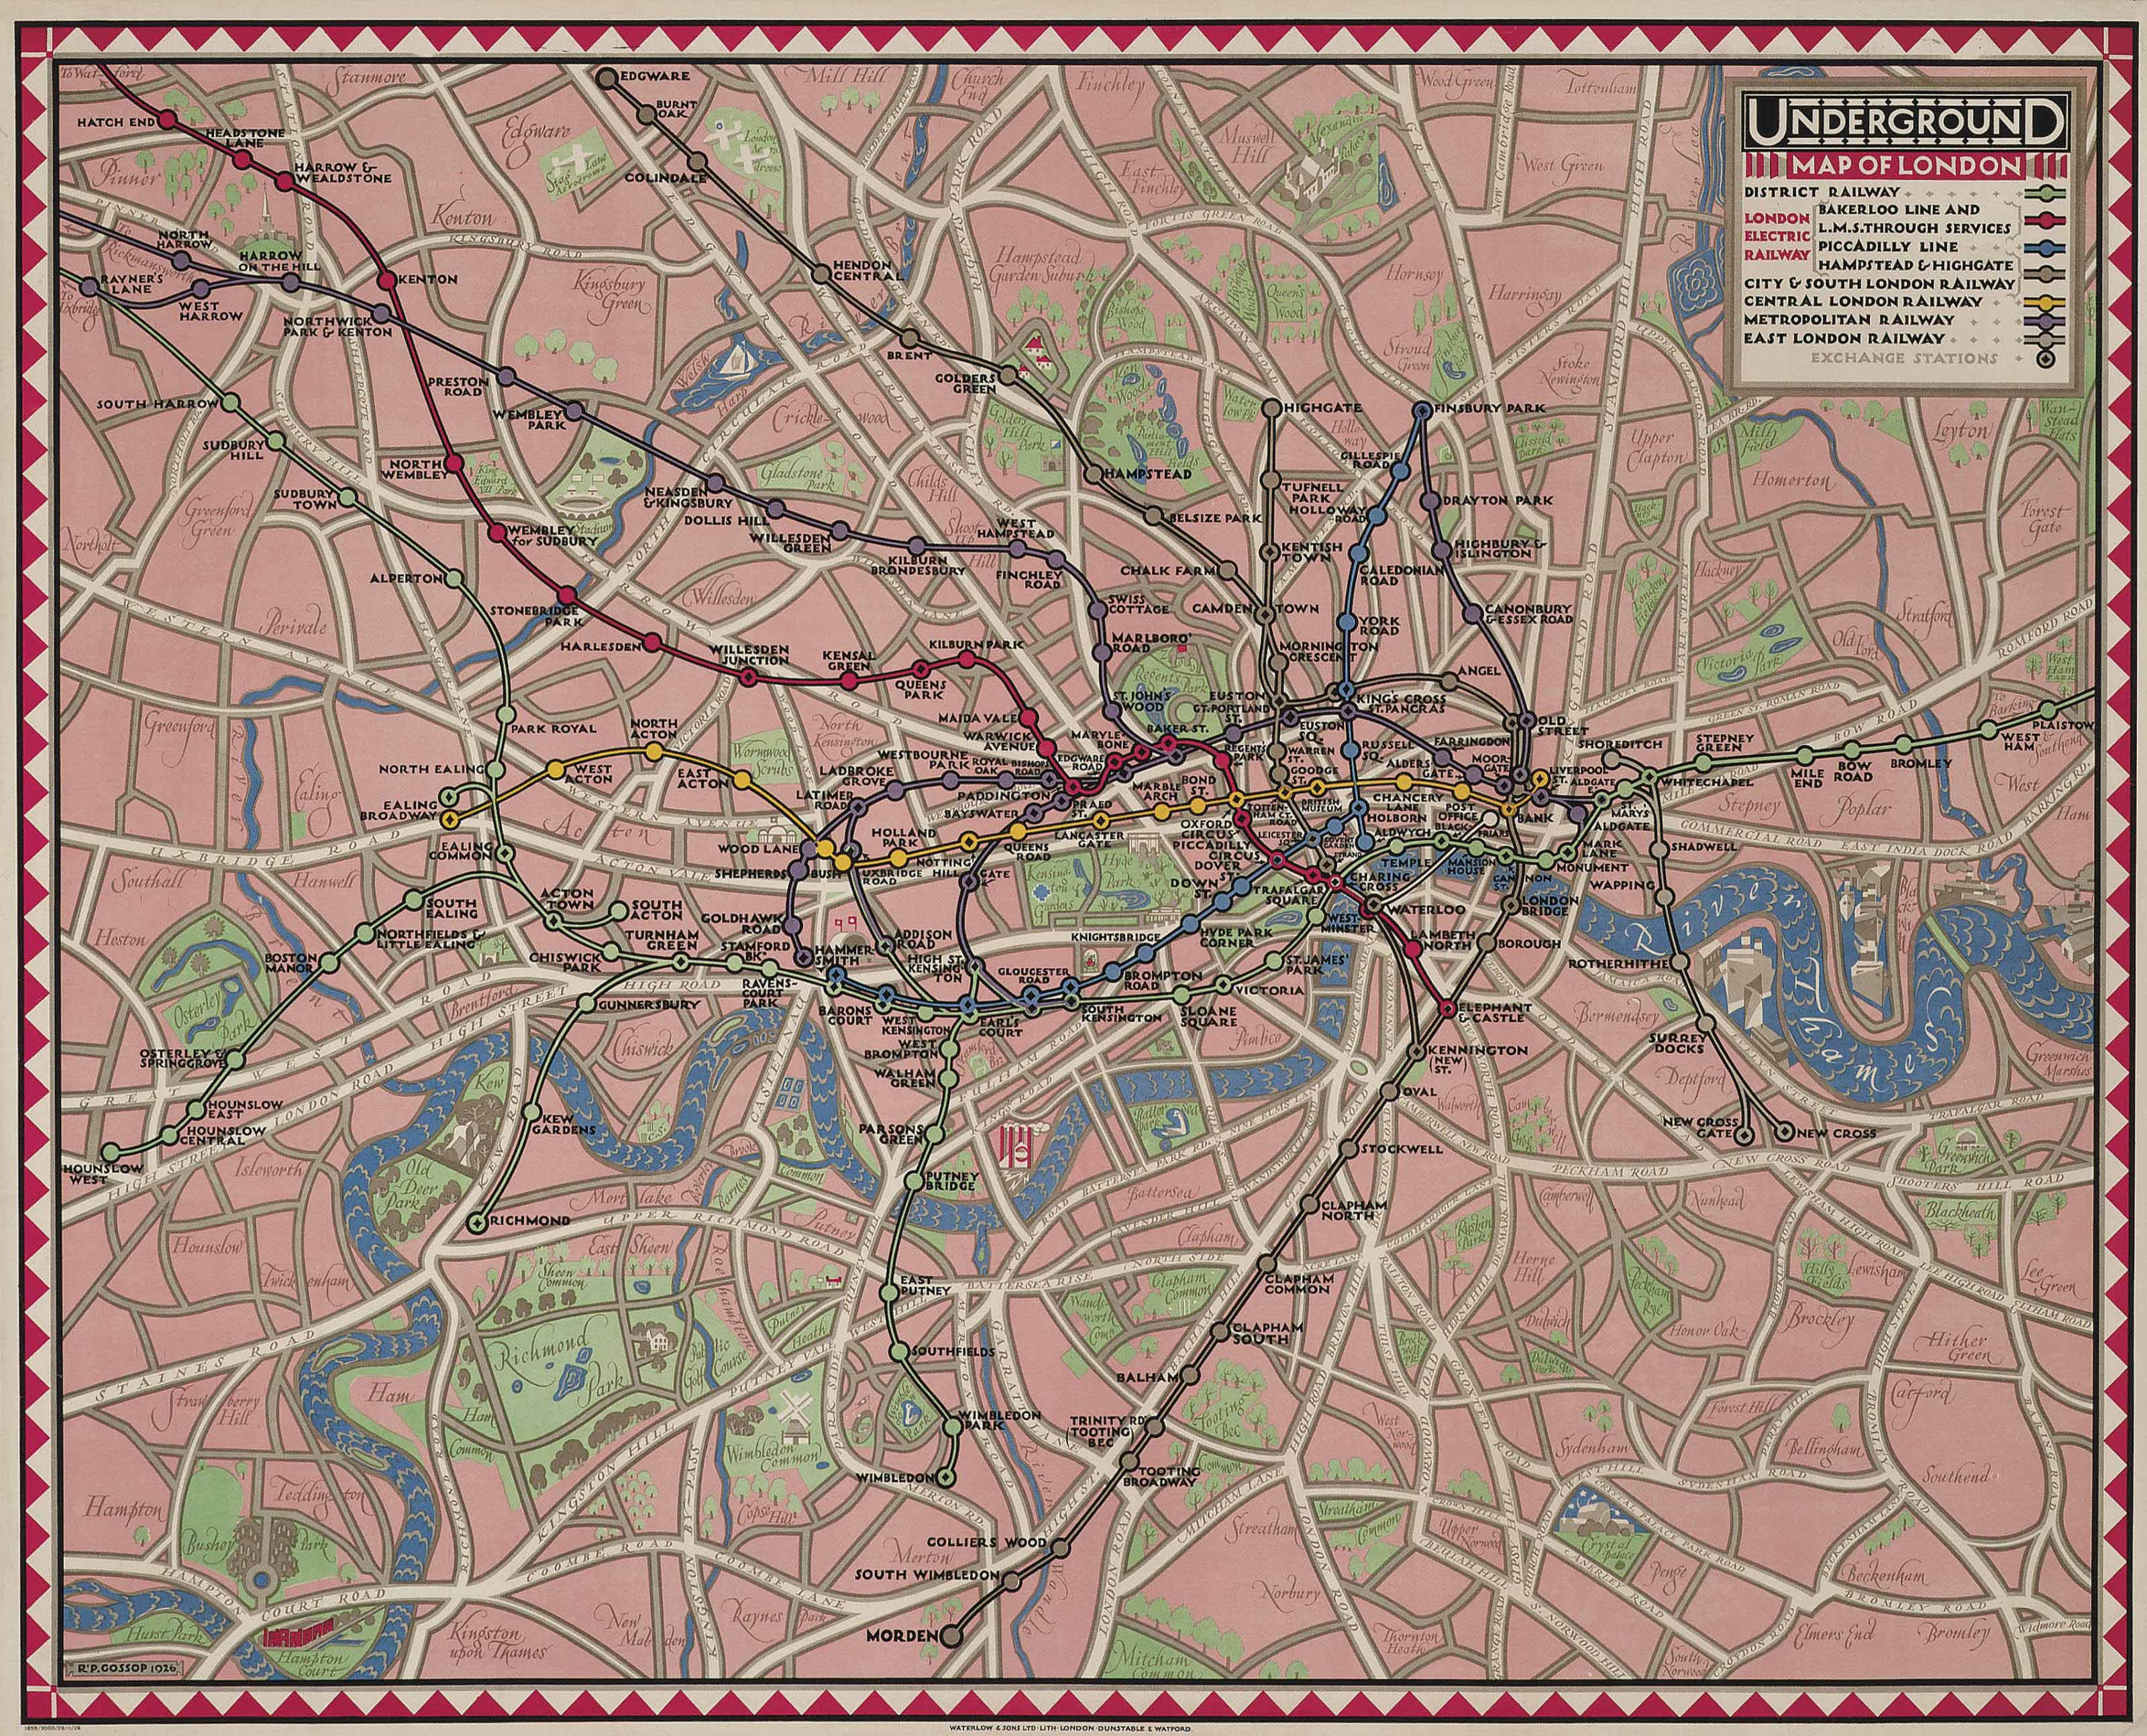 UNDERGROUND MAP OF LONDON